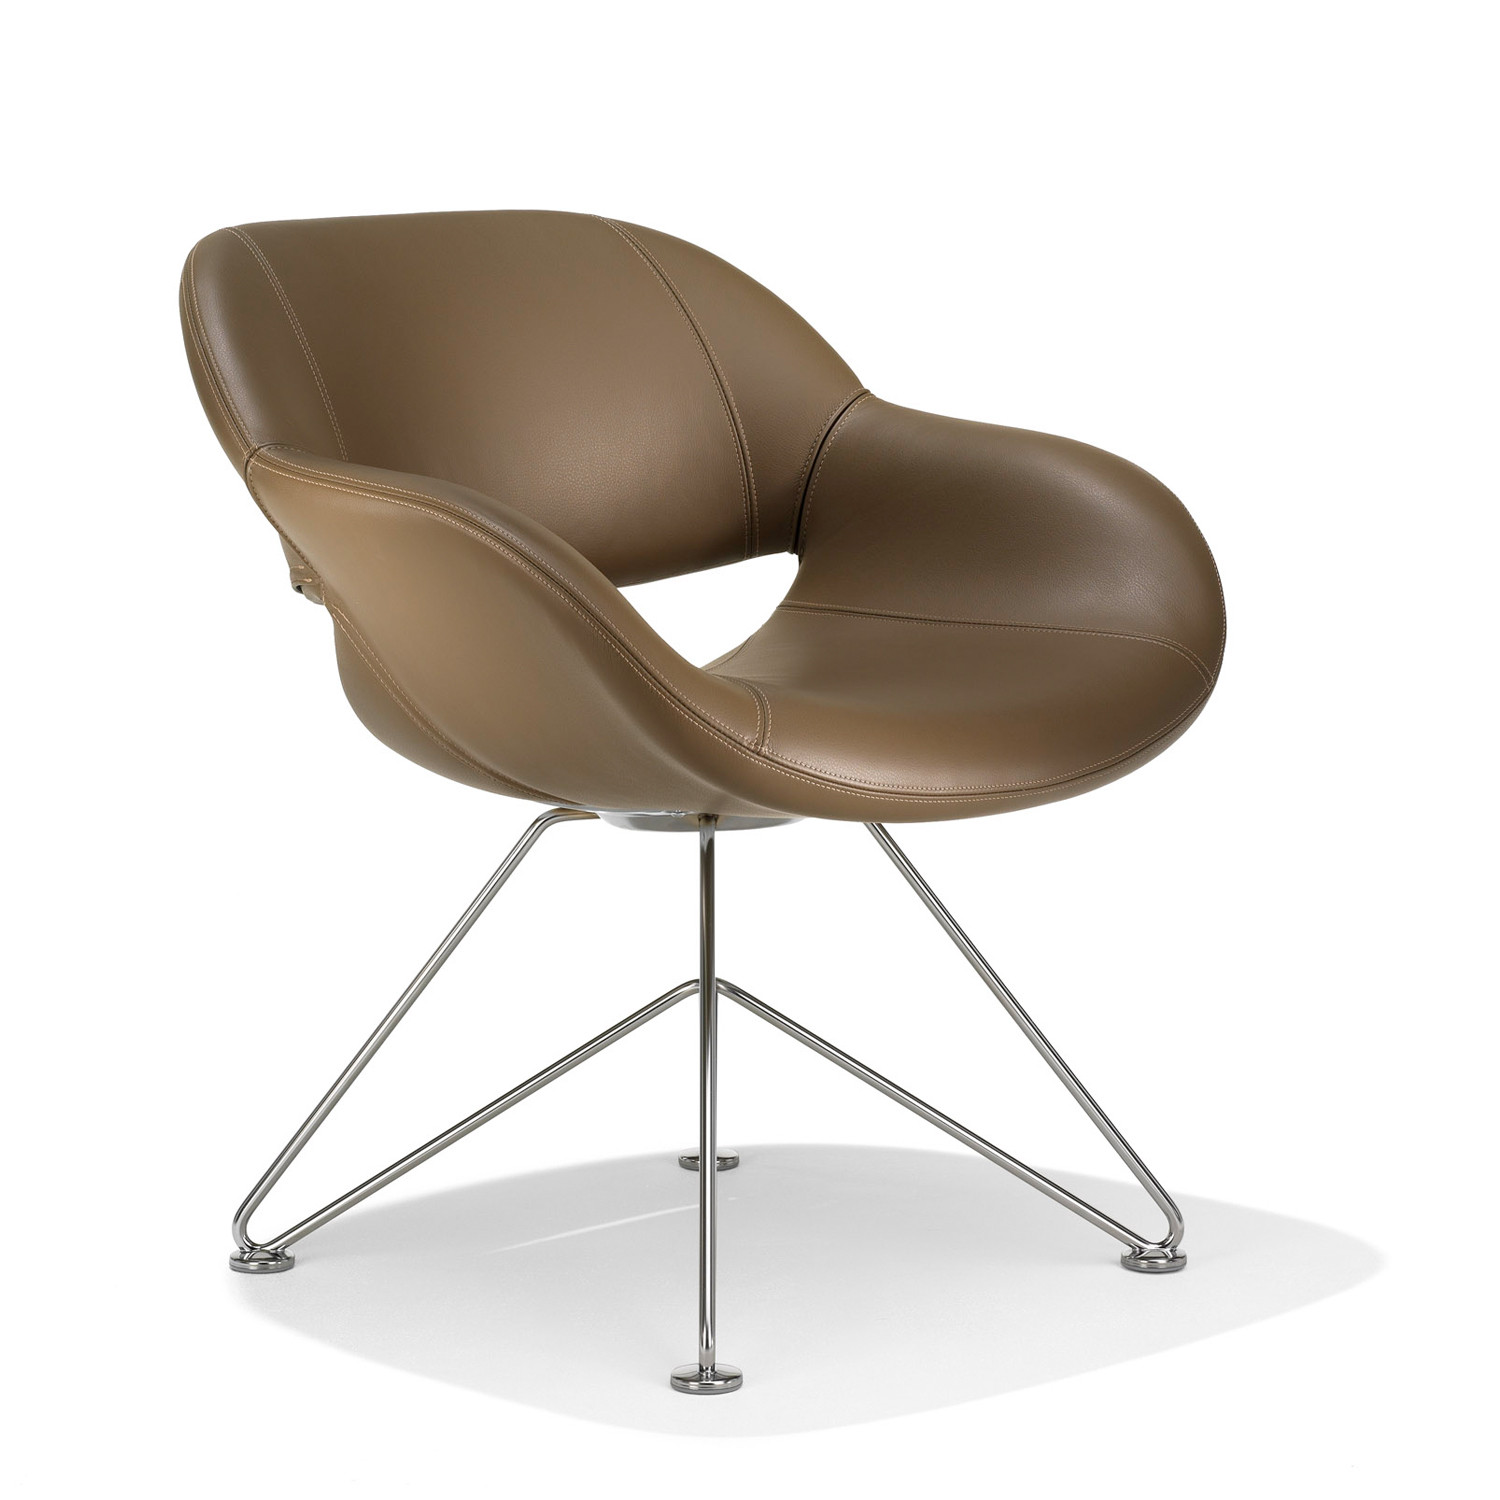 8200 Volpe Armchair with wired base